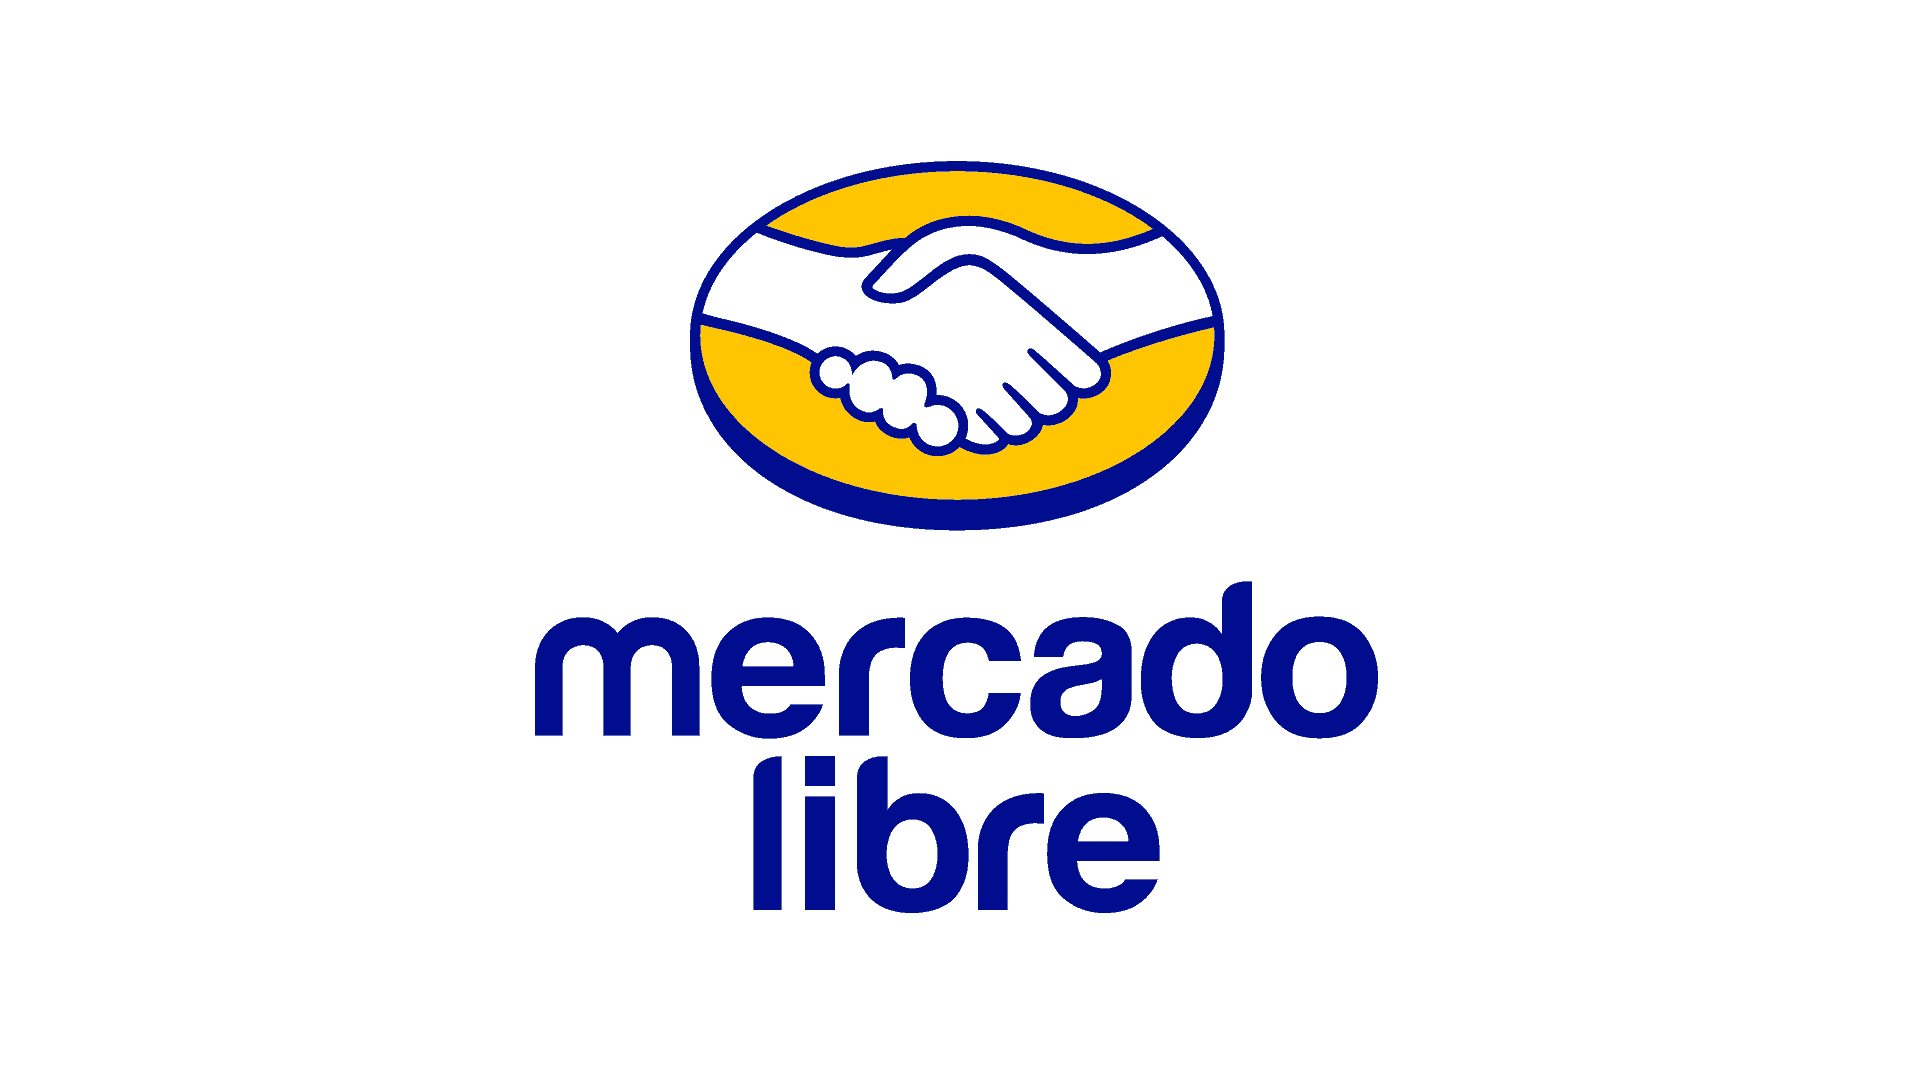 mercado-libre-featured-image